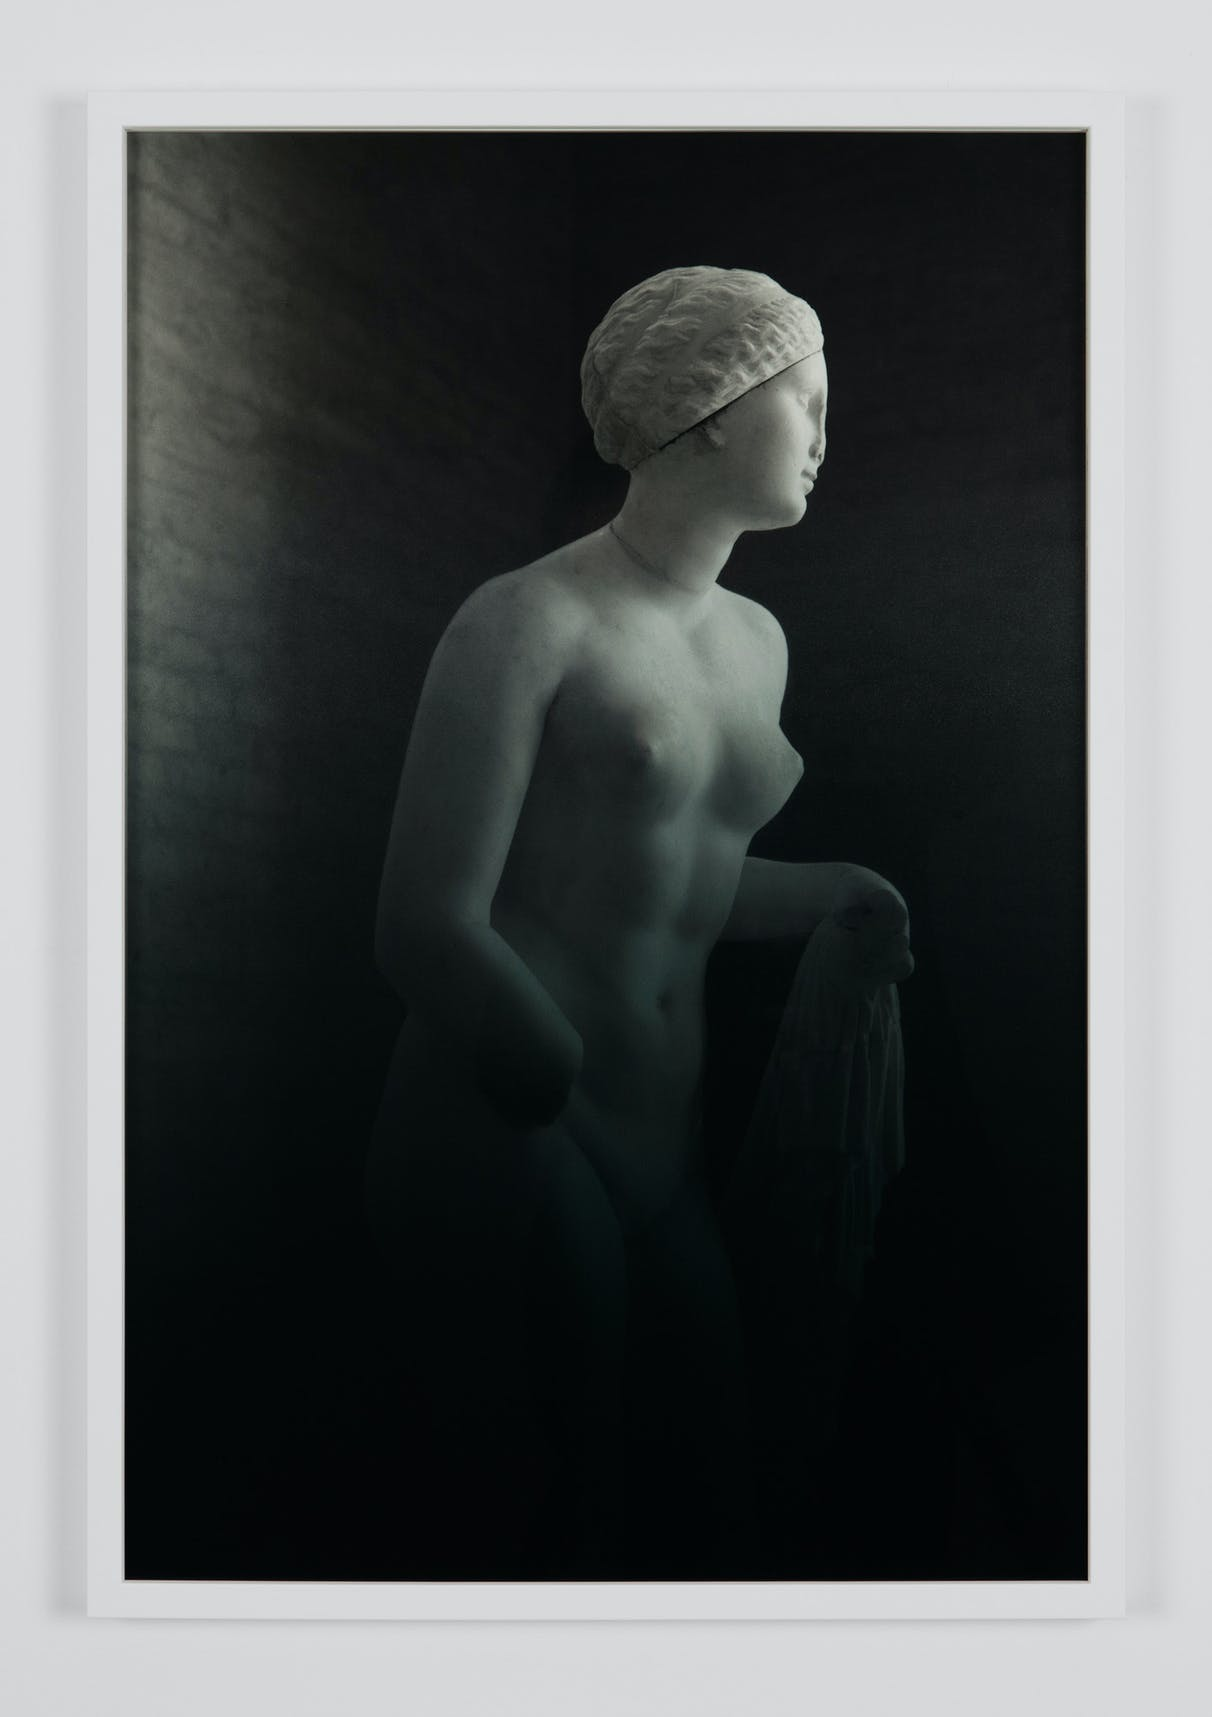 Espen Gleditsch Aphrodite of Knidos 2017 40x60 cm archival pigment print foil on glass